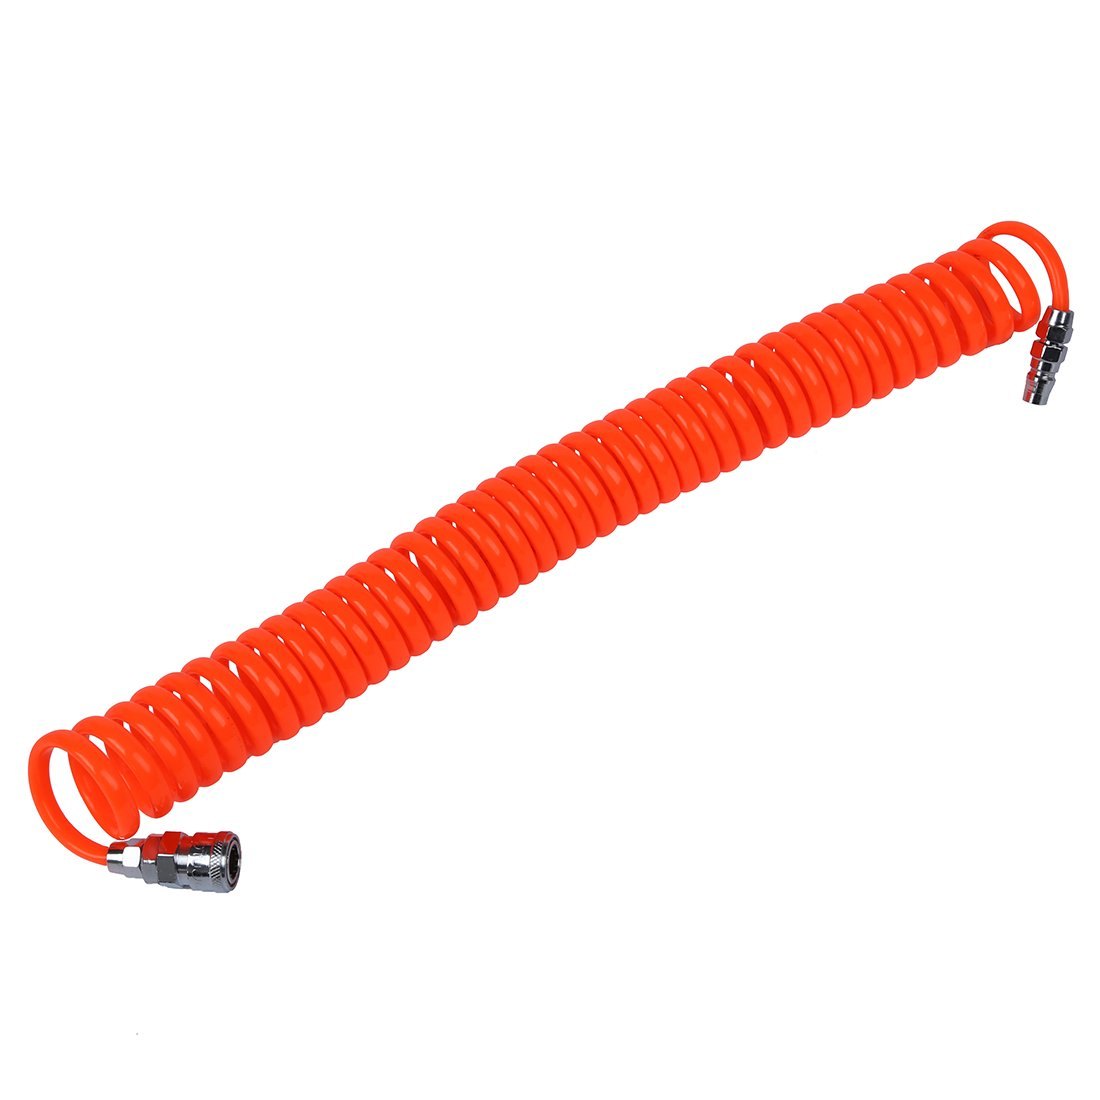 SNOWINSPRING 6M 19.7Ft 8mm x 5mm Flexible PU Recoil Hose Tube for Compressor Air Tool